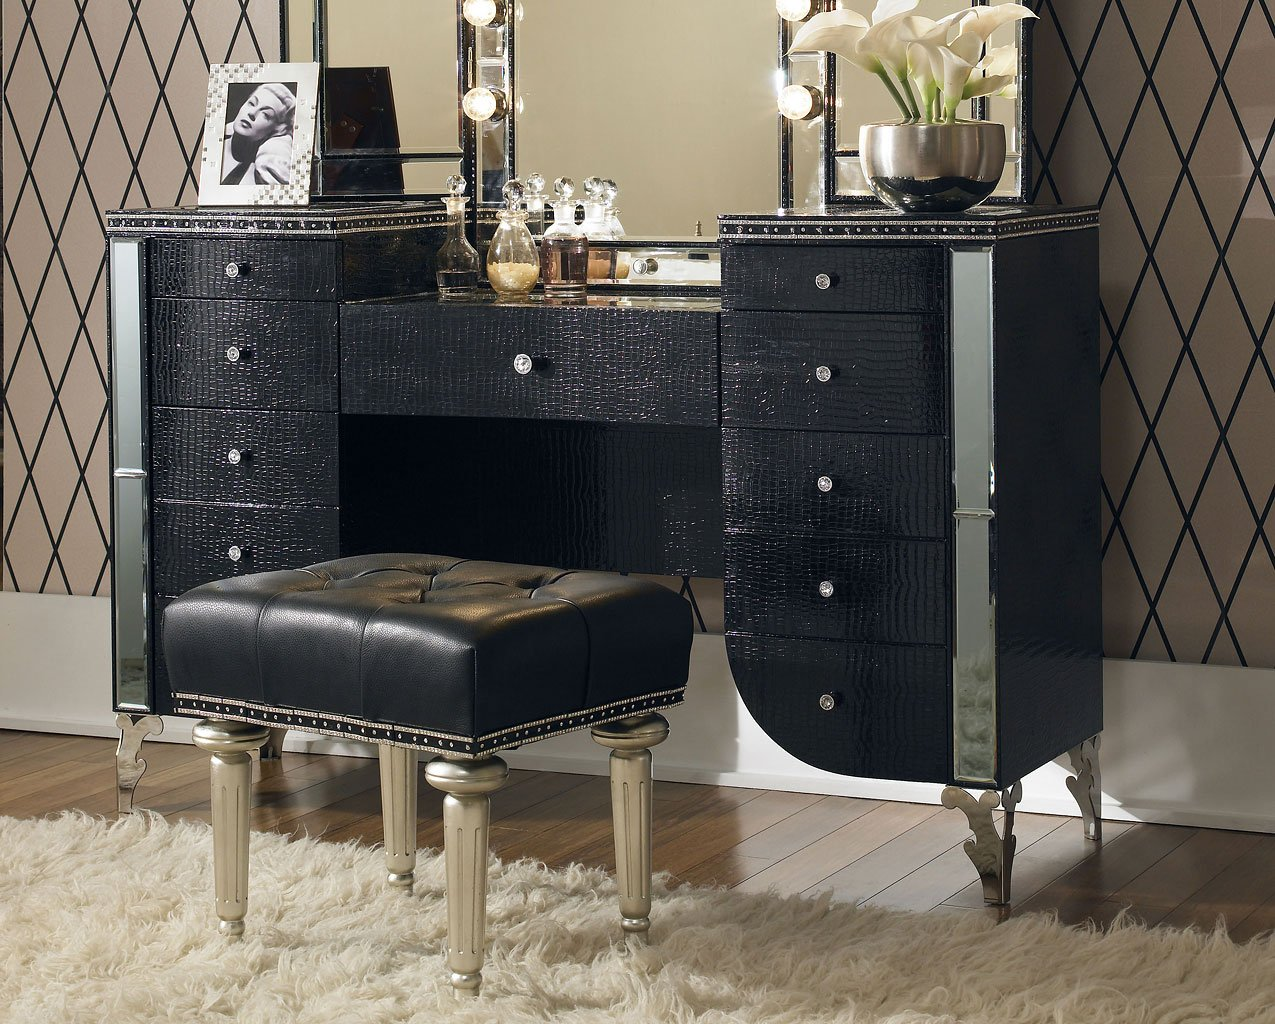 fabulous hollywood bedroom furniture set | Hollywood Swank Bedroom Set W/ Creamy Pearl Bed Aico ...